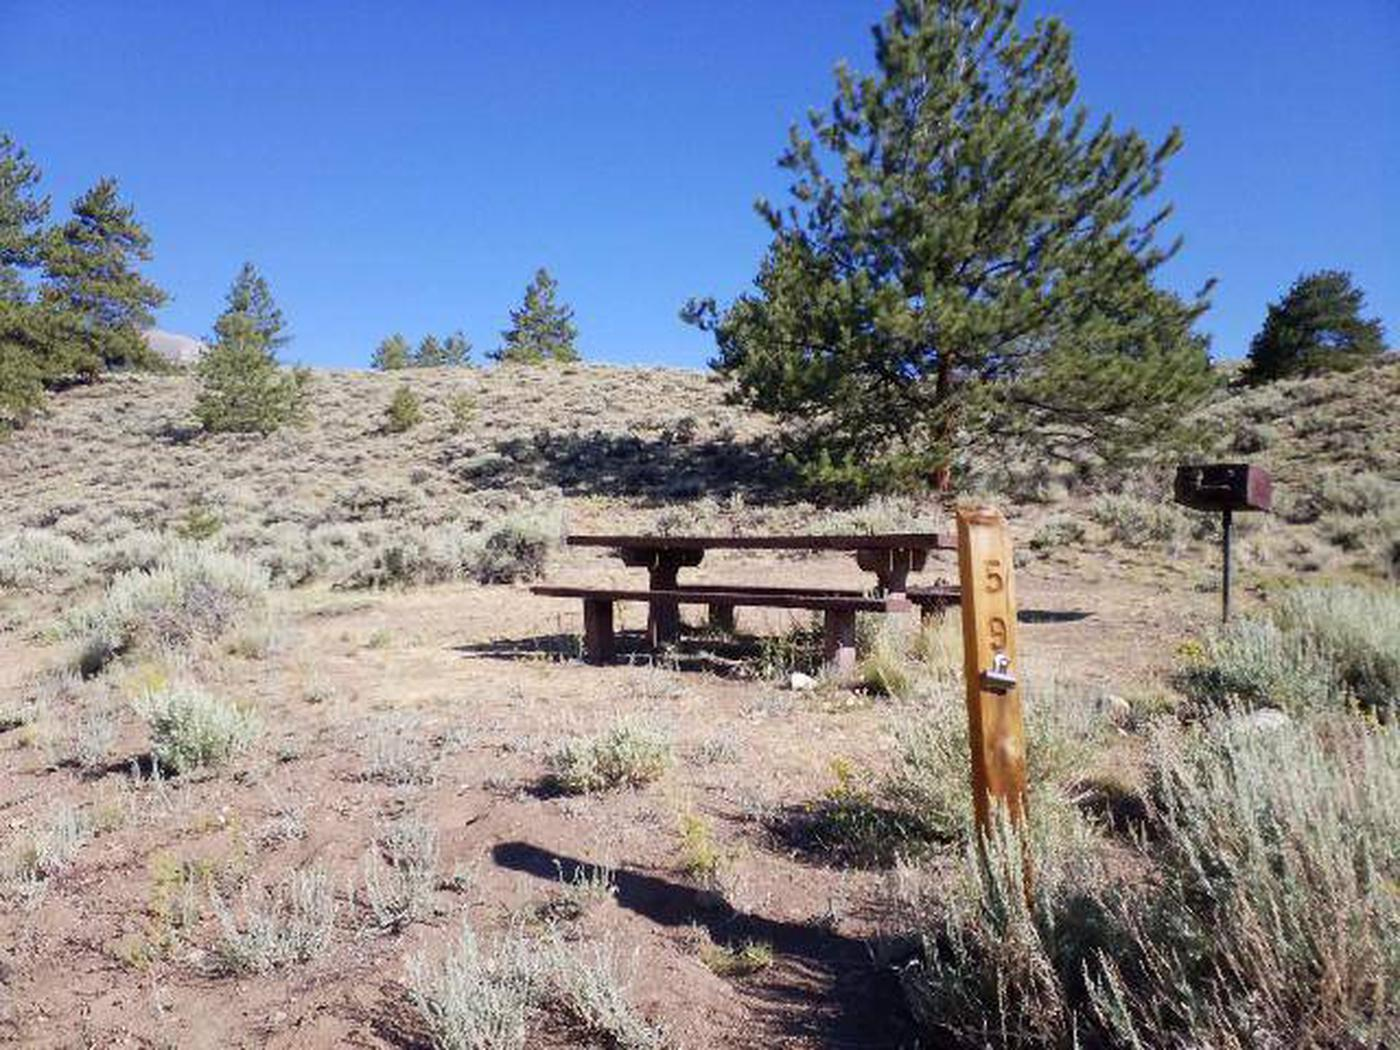 White Star Campground, site 59 picnic table and grill